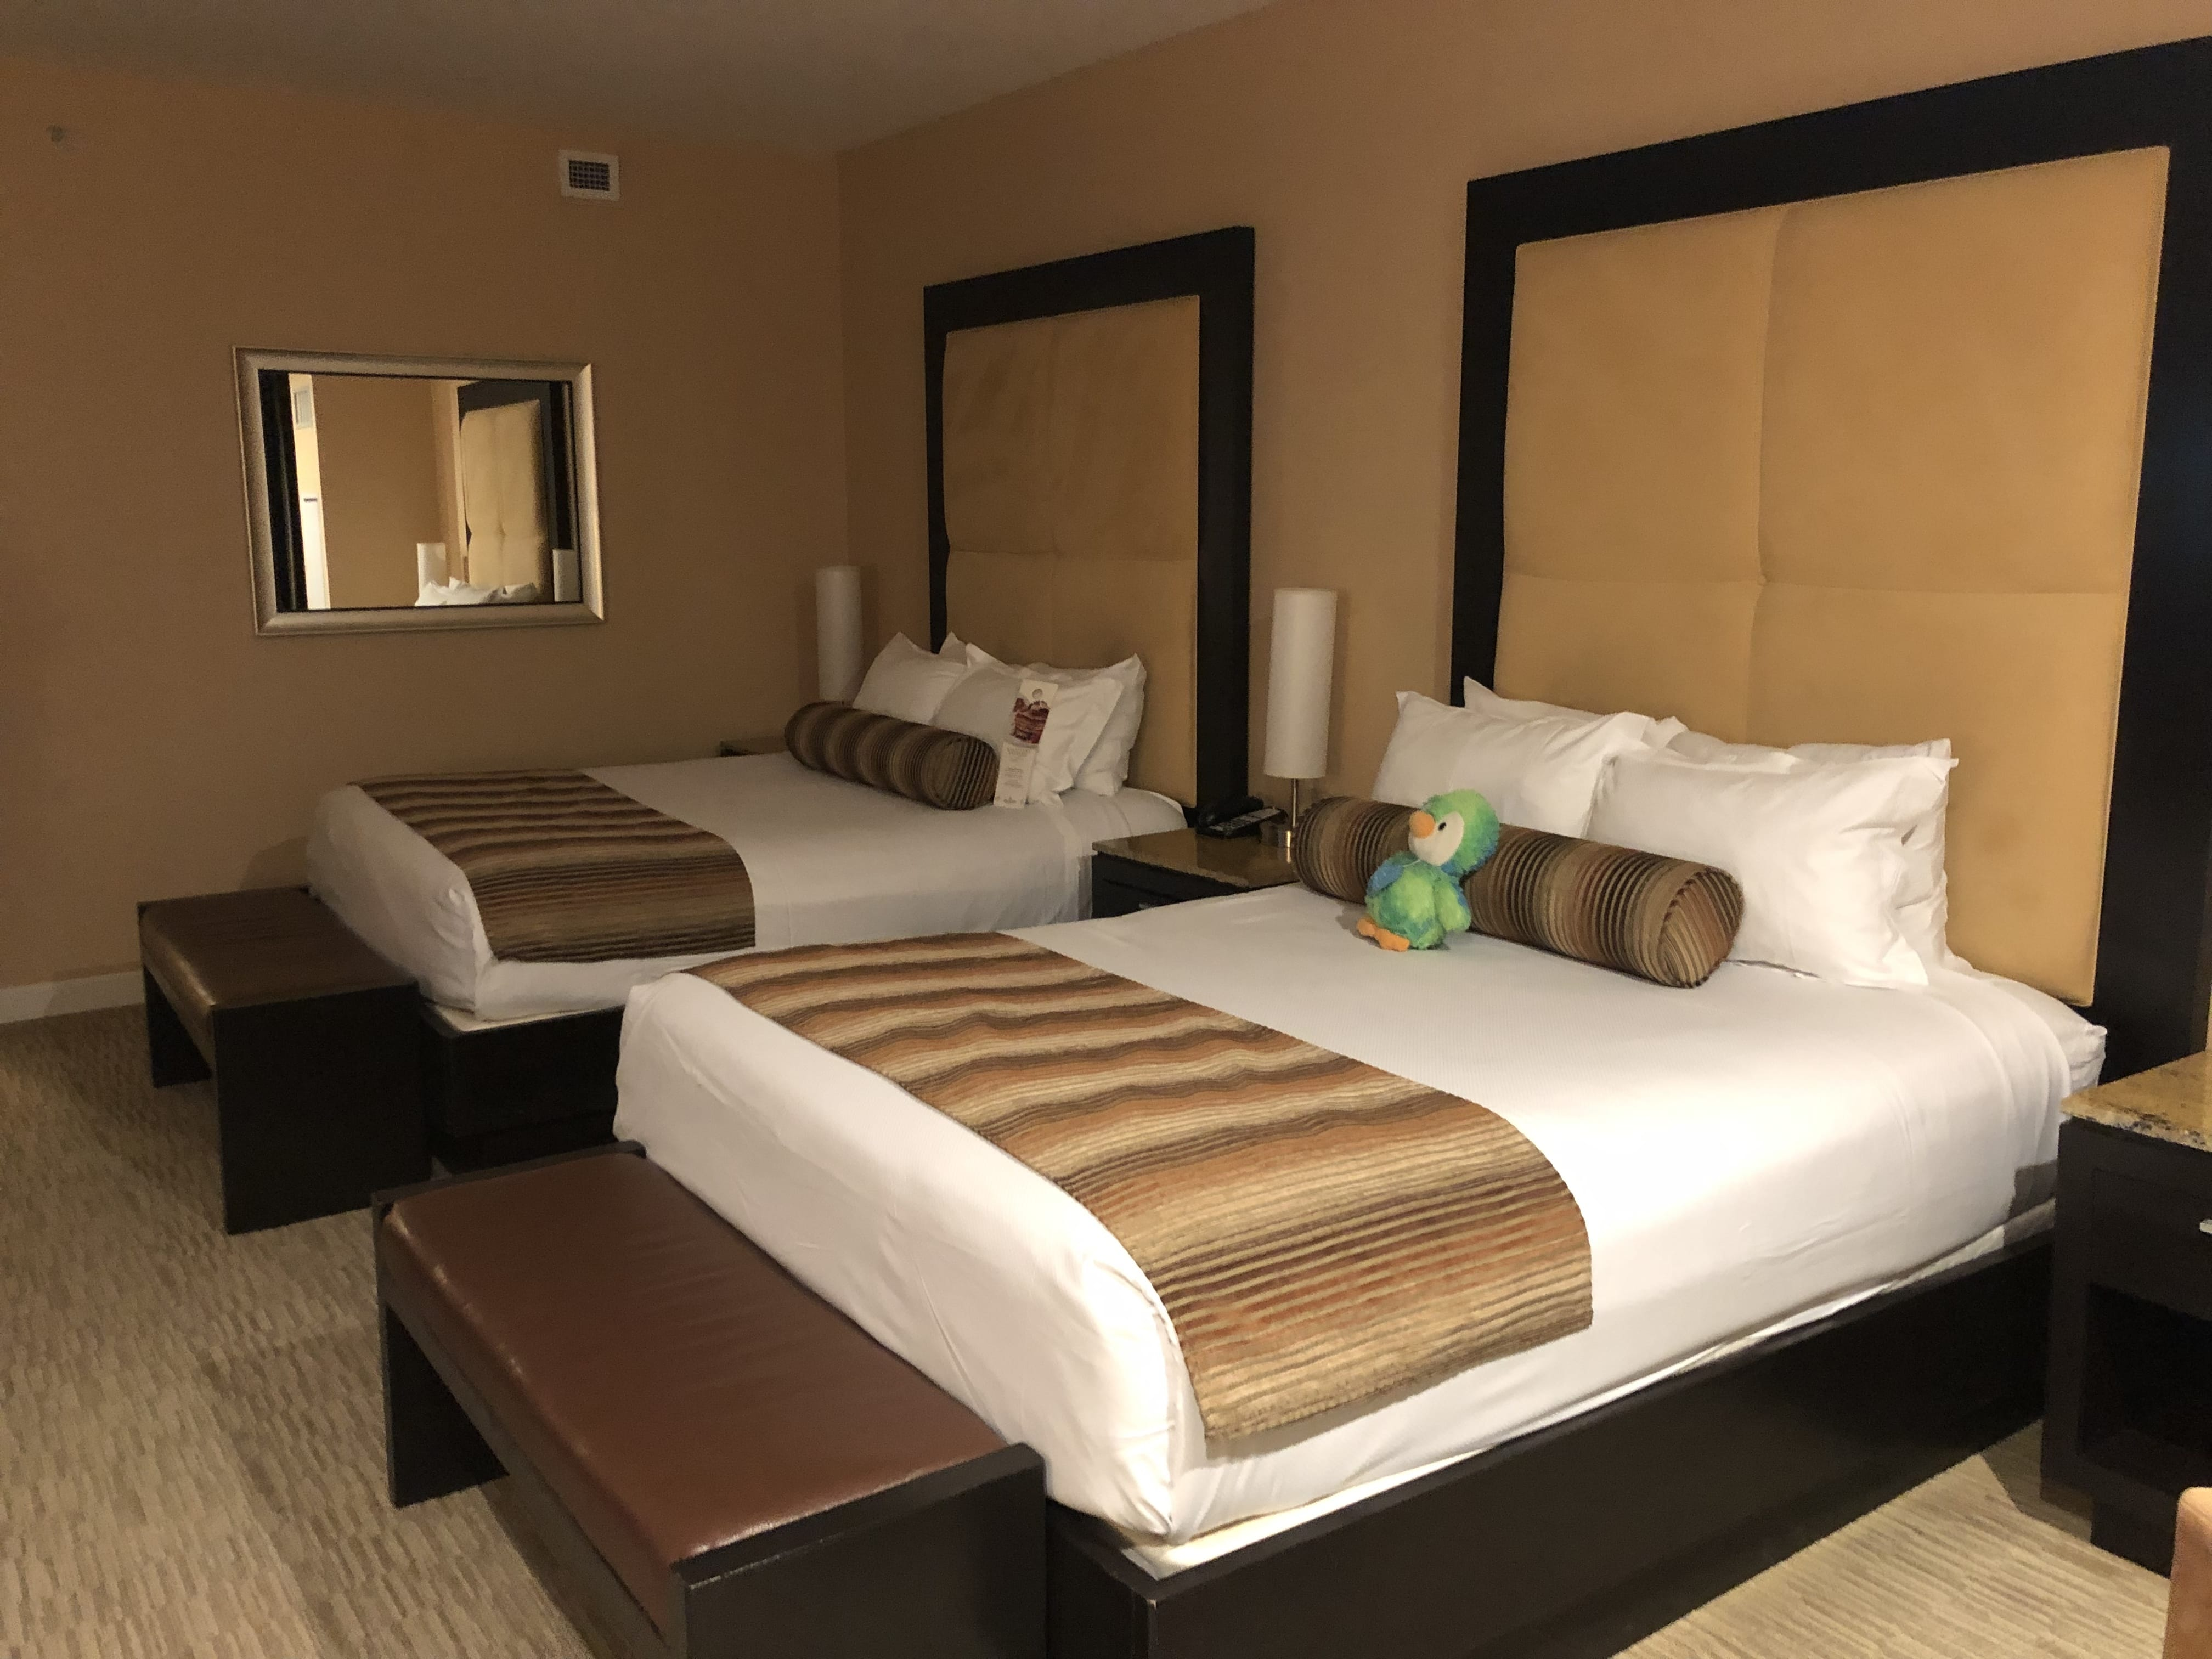 Our two-bed room in Agua Caliente Casino Resort Spa